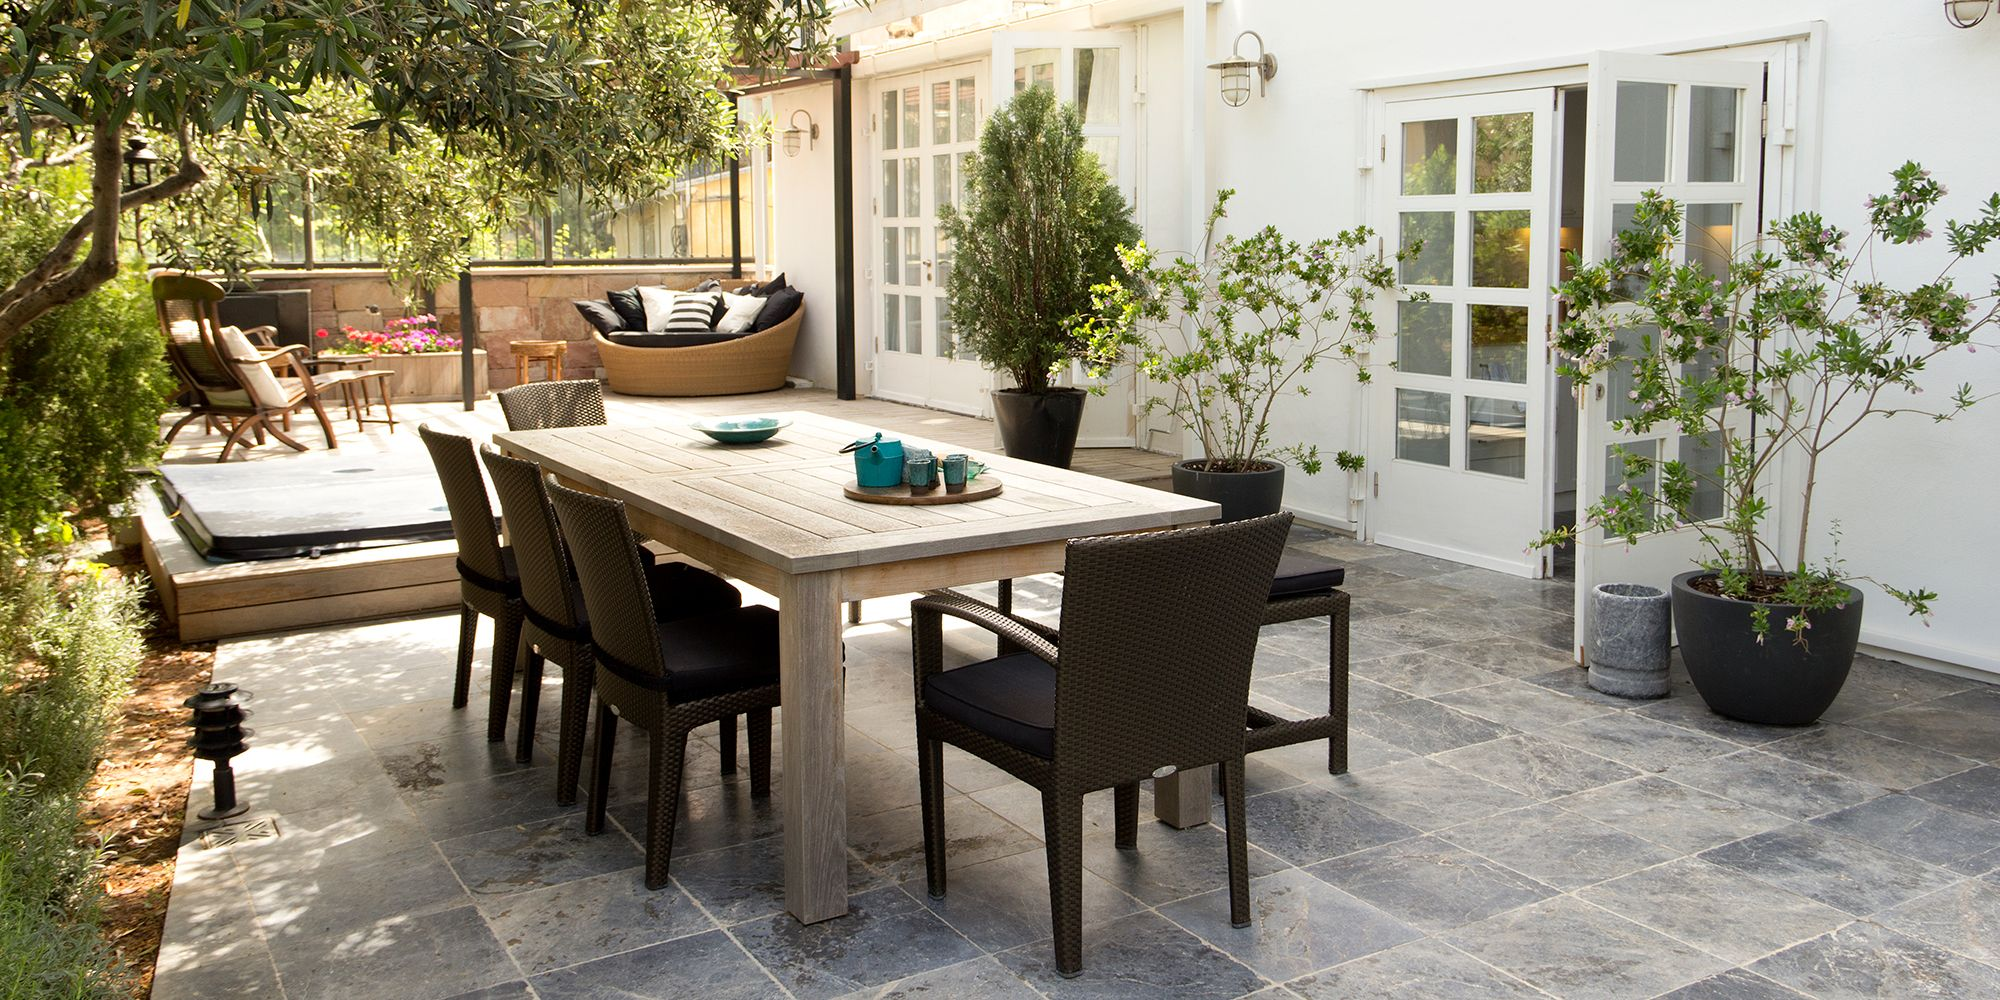 BestProducts.com & 9 Best Patio Dining Sets You Can Buy on Amazon in 2019